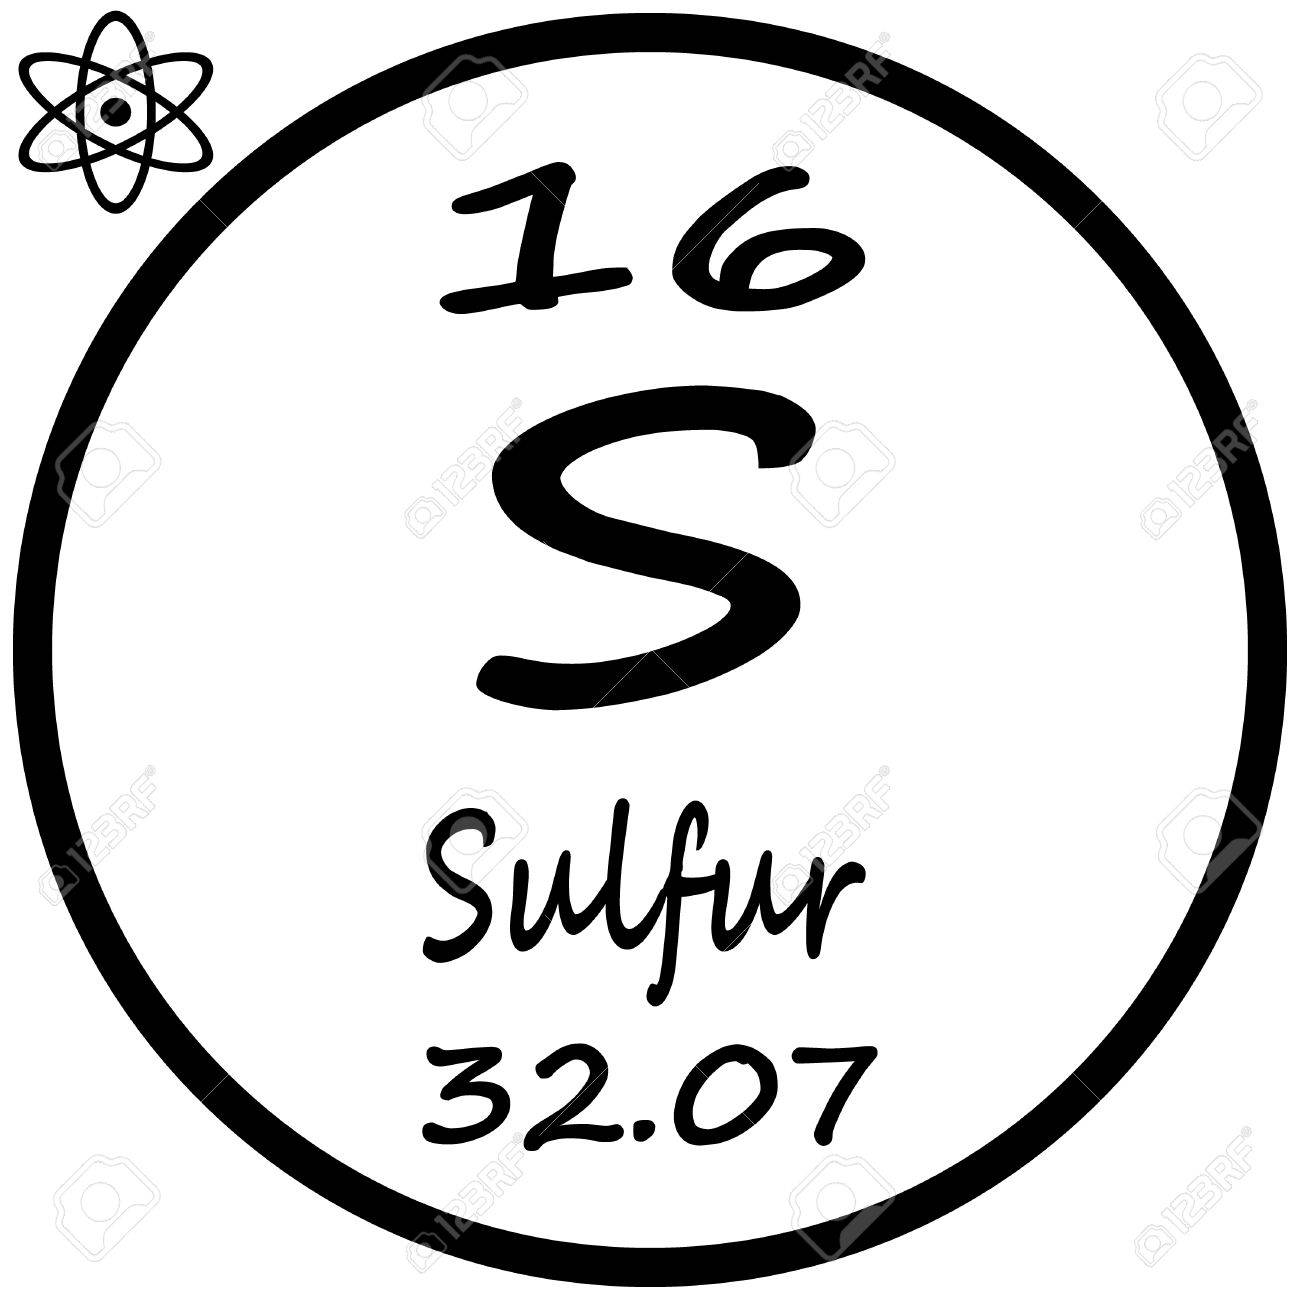 Periodic table of elements sulfur royalty free cliparts vectors periodic table of elements sulfur stock vector 53482433 buycottarizona Image collections